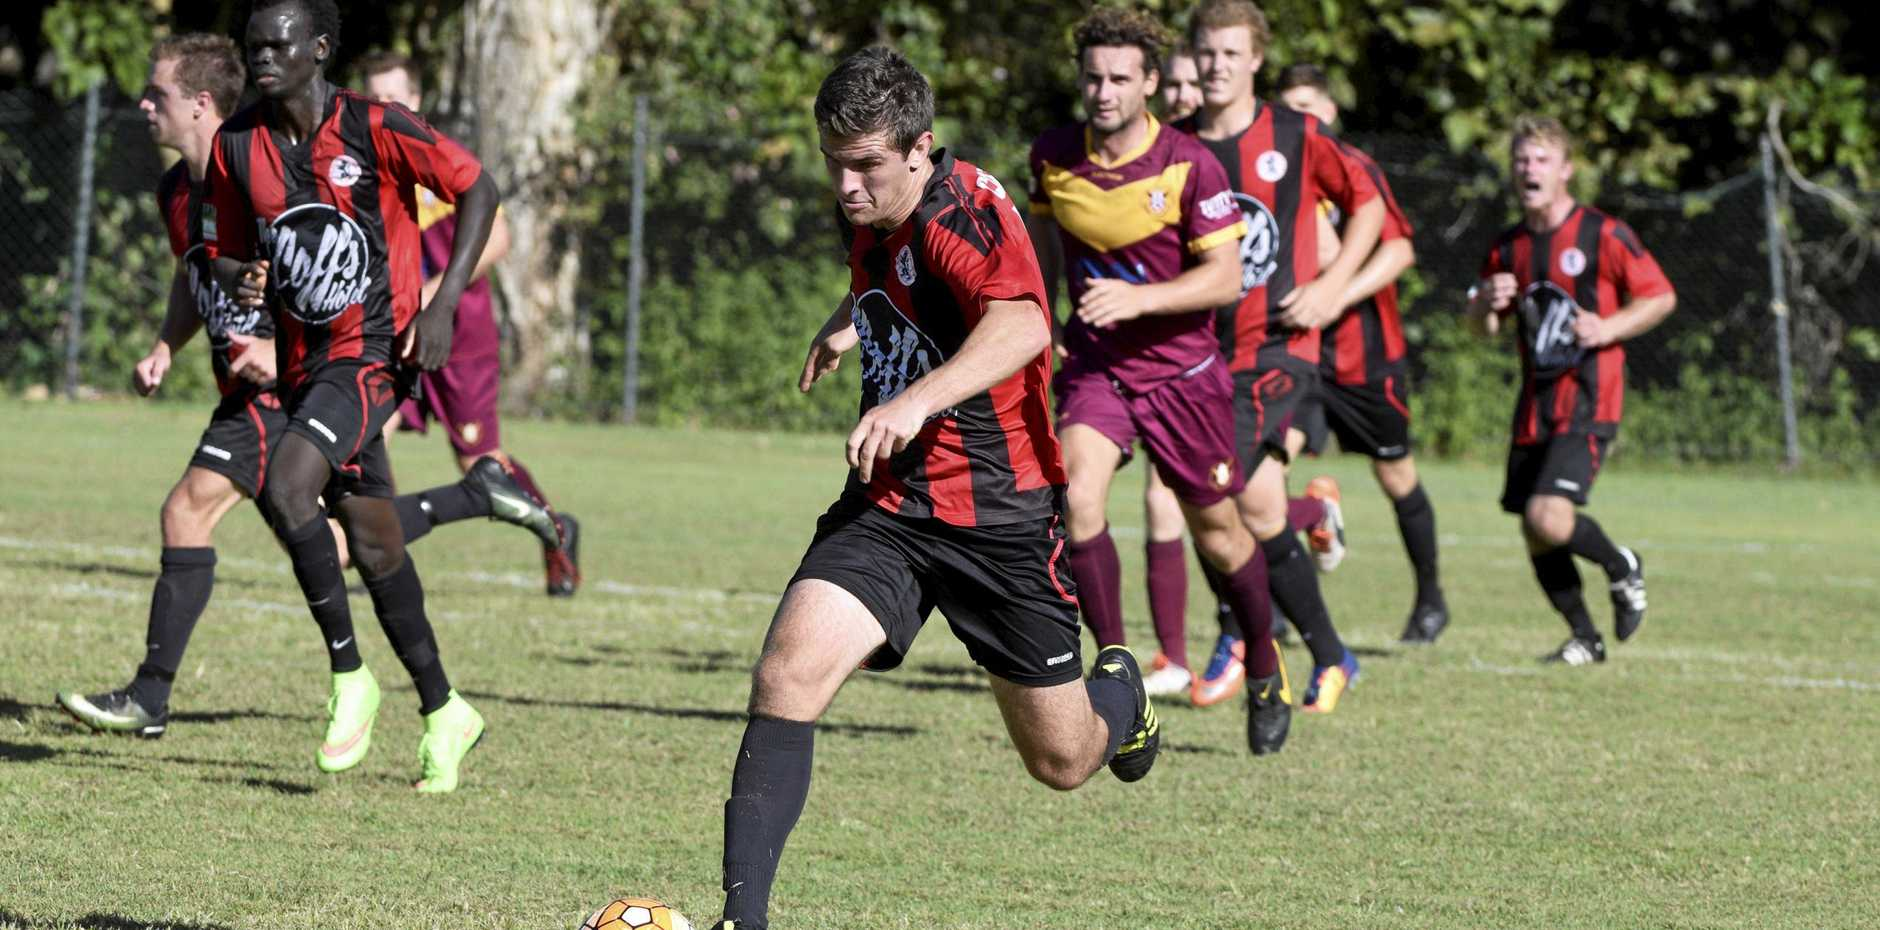 JUMP AHEAD: The single goal win over Urunga puts Coffs United in the box seat for second spot on the ladder.